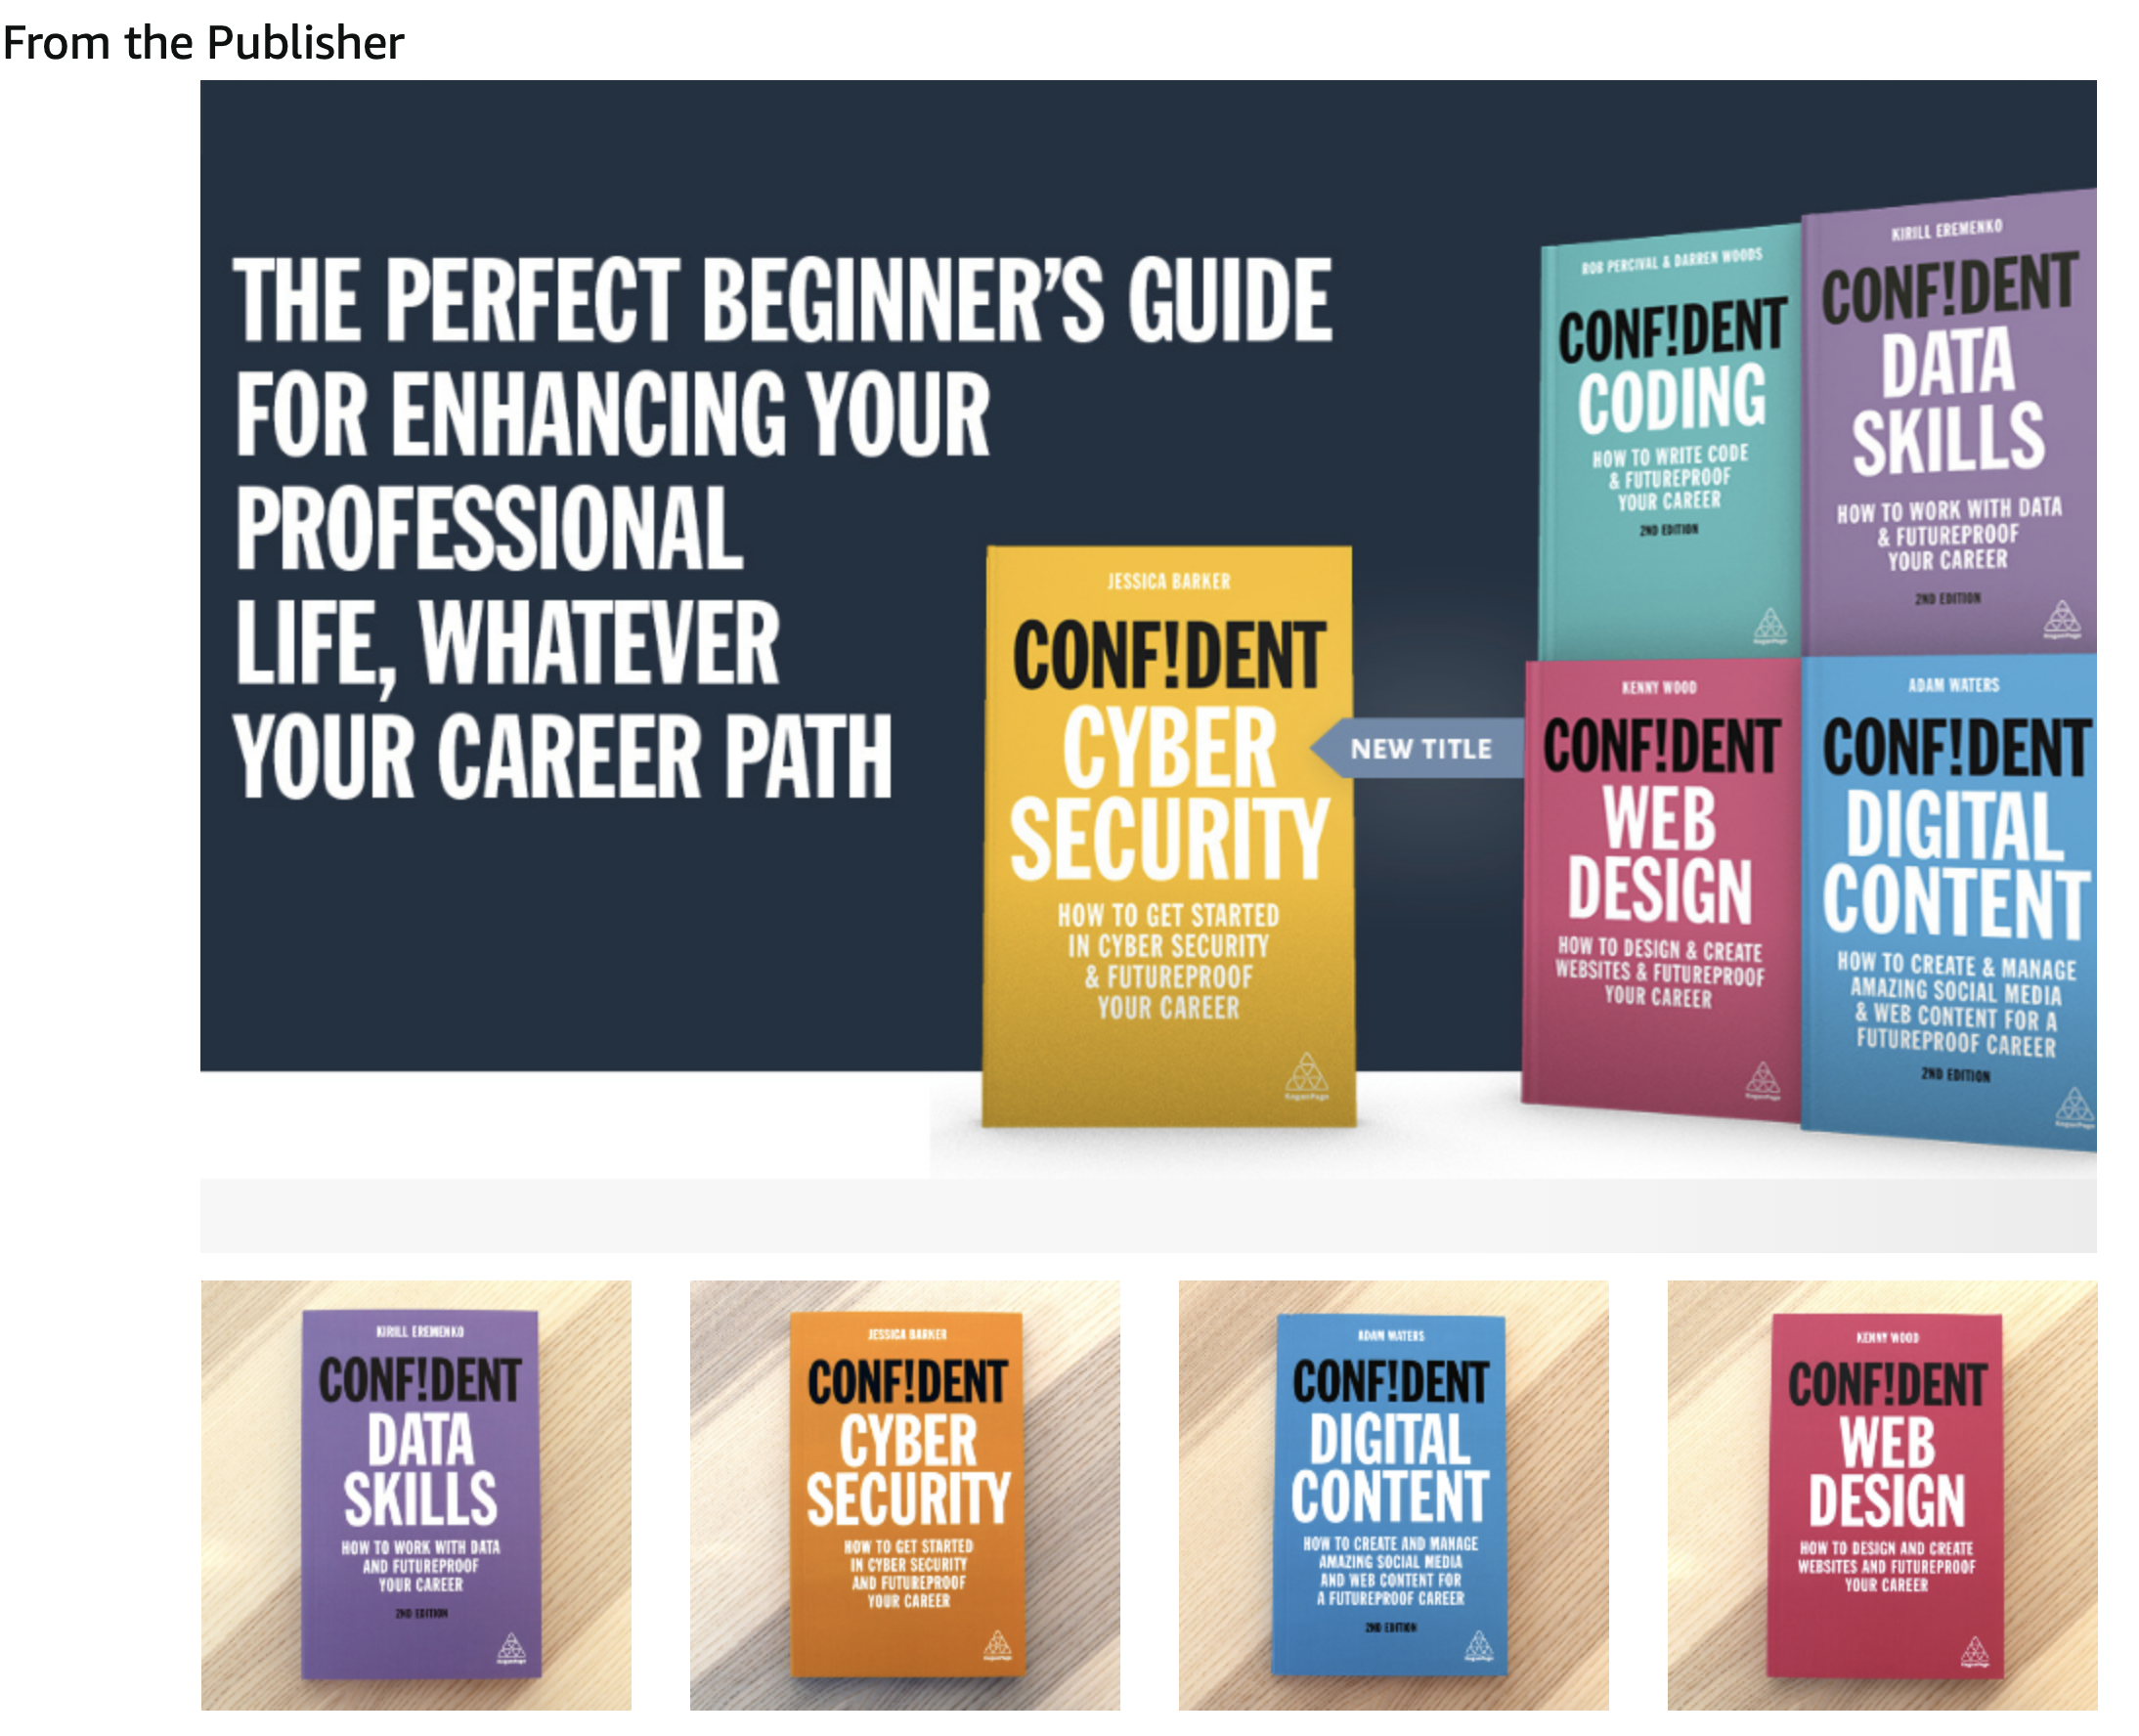 From the Publisher - The perfect beginner's guide for enhancing your professional life, whatever your career path. Confident Cyber Security (yellow), Confident Coding (green), Confident Data Skills (purple), Confident Digital Content (blue) and Confident web design (pink).